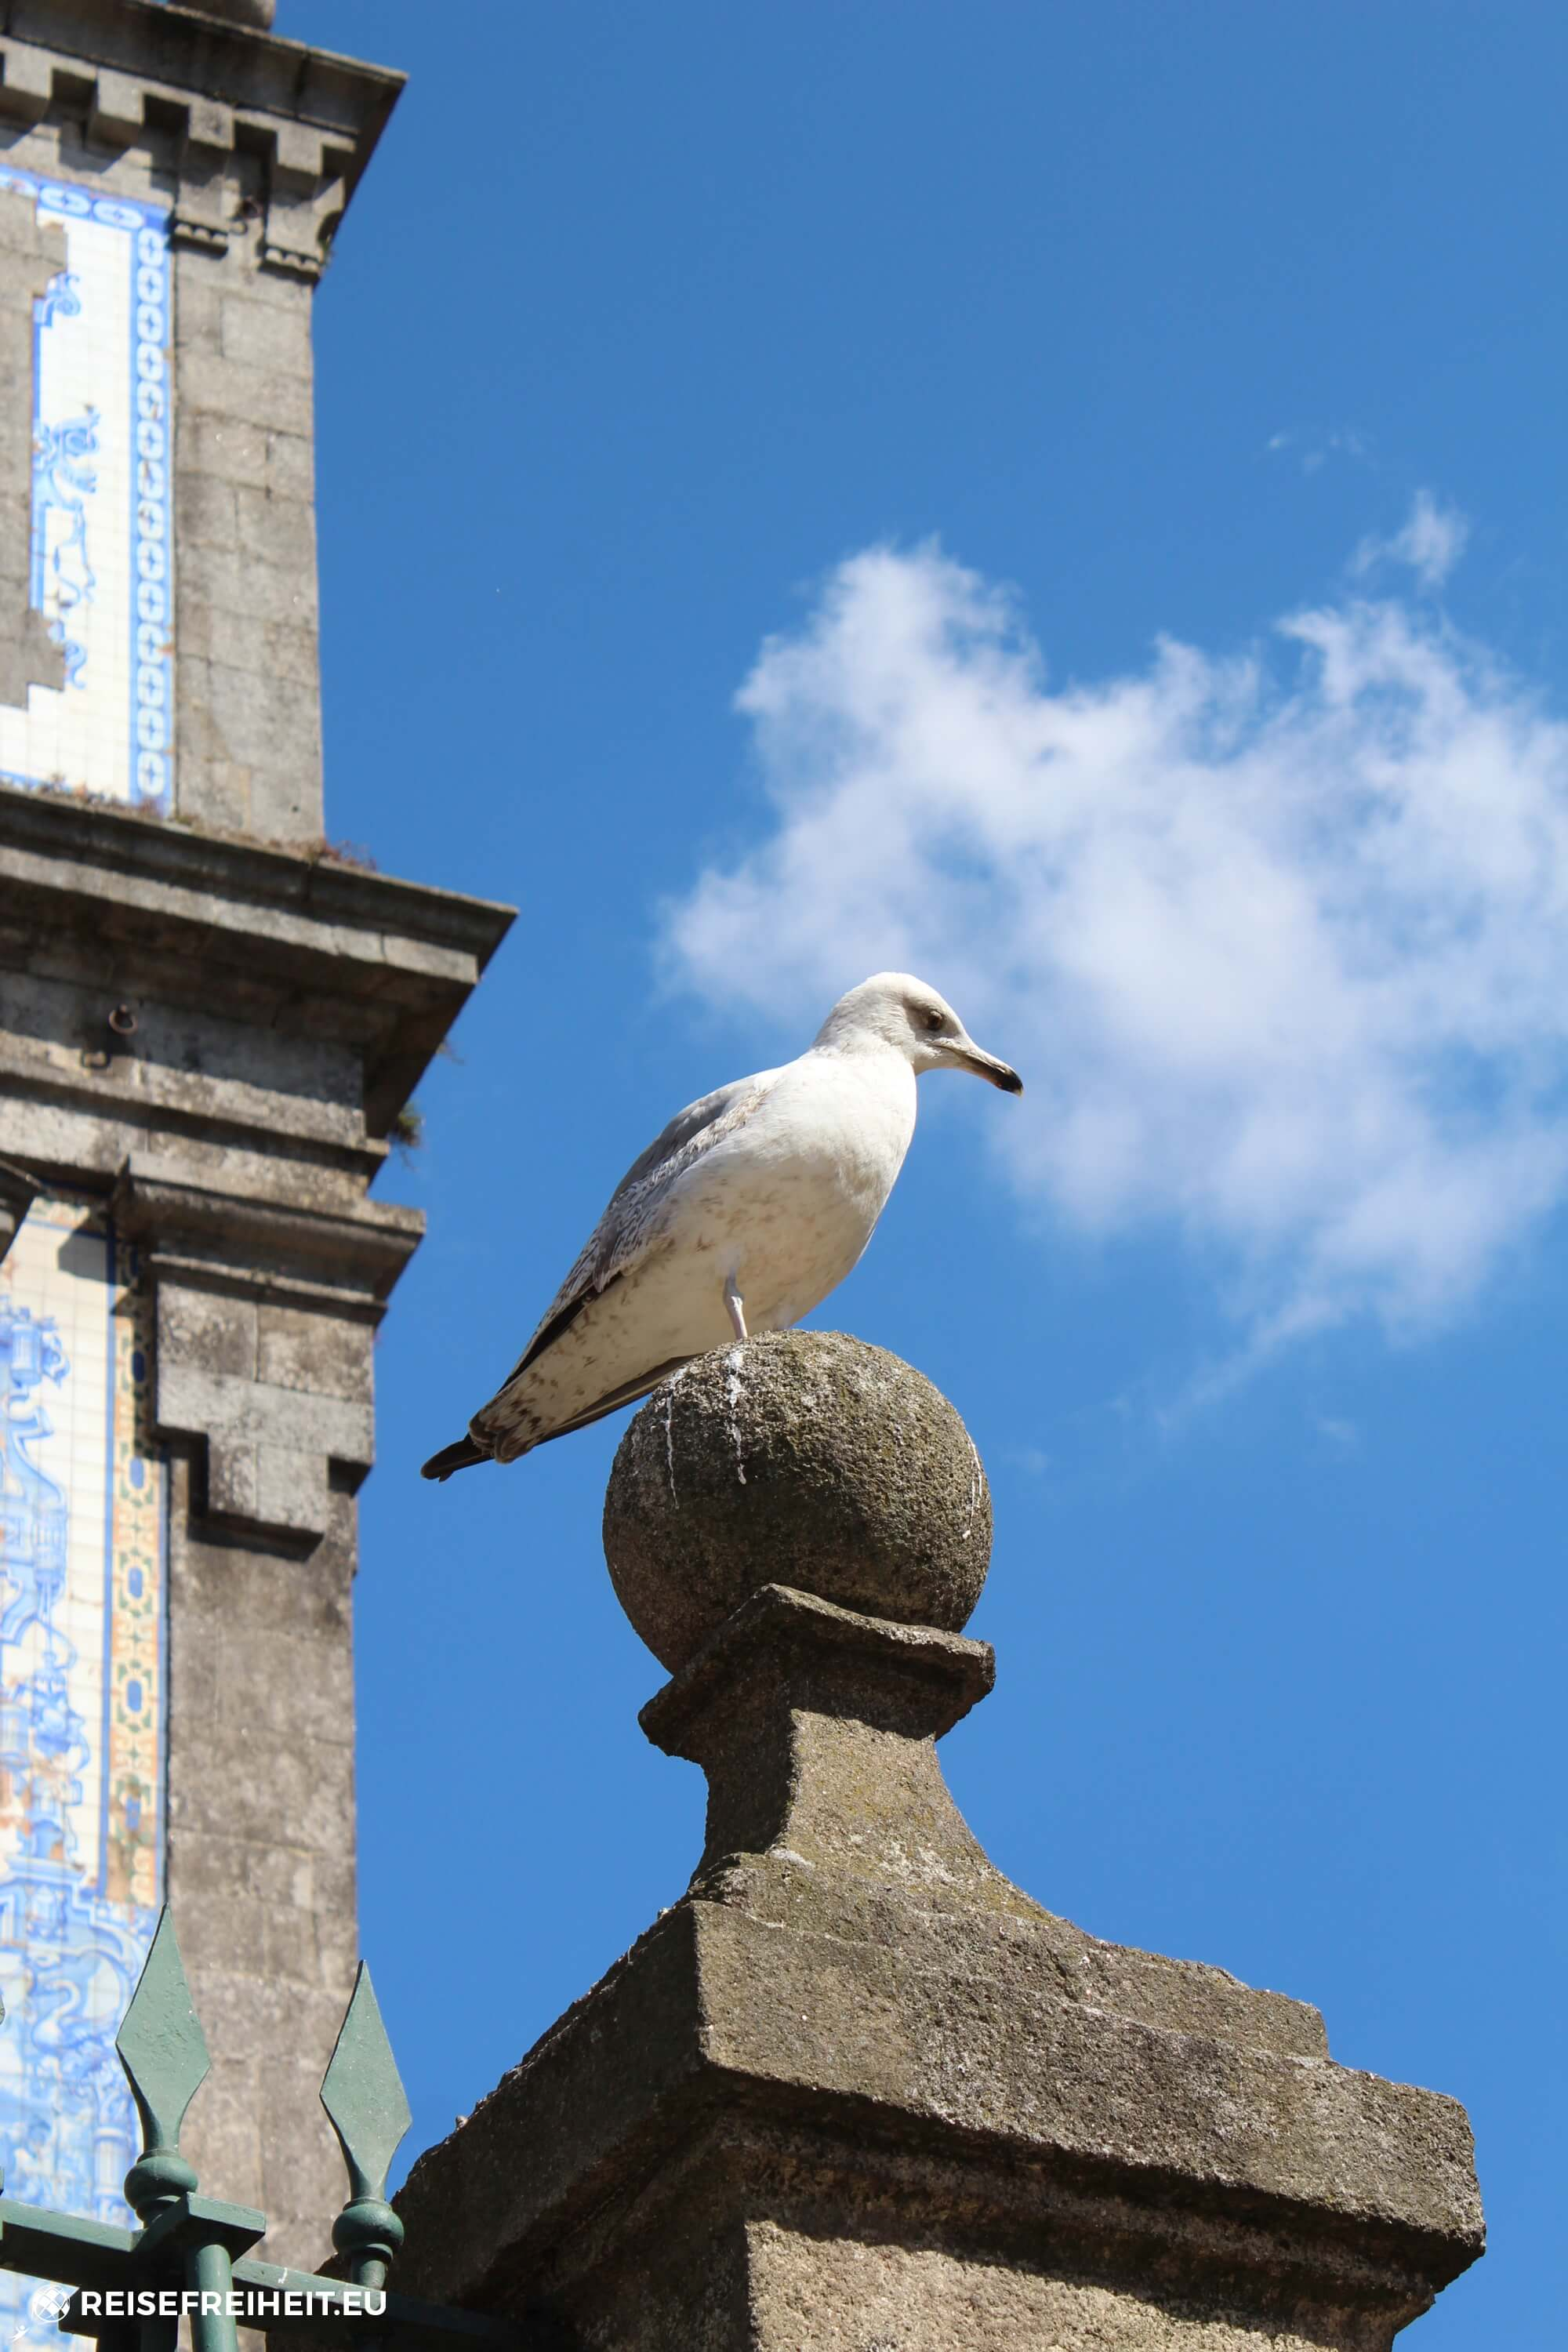 portugal-porto-Church-of-Saint-Ildefonso-bird-reisefreiheit